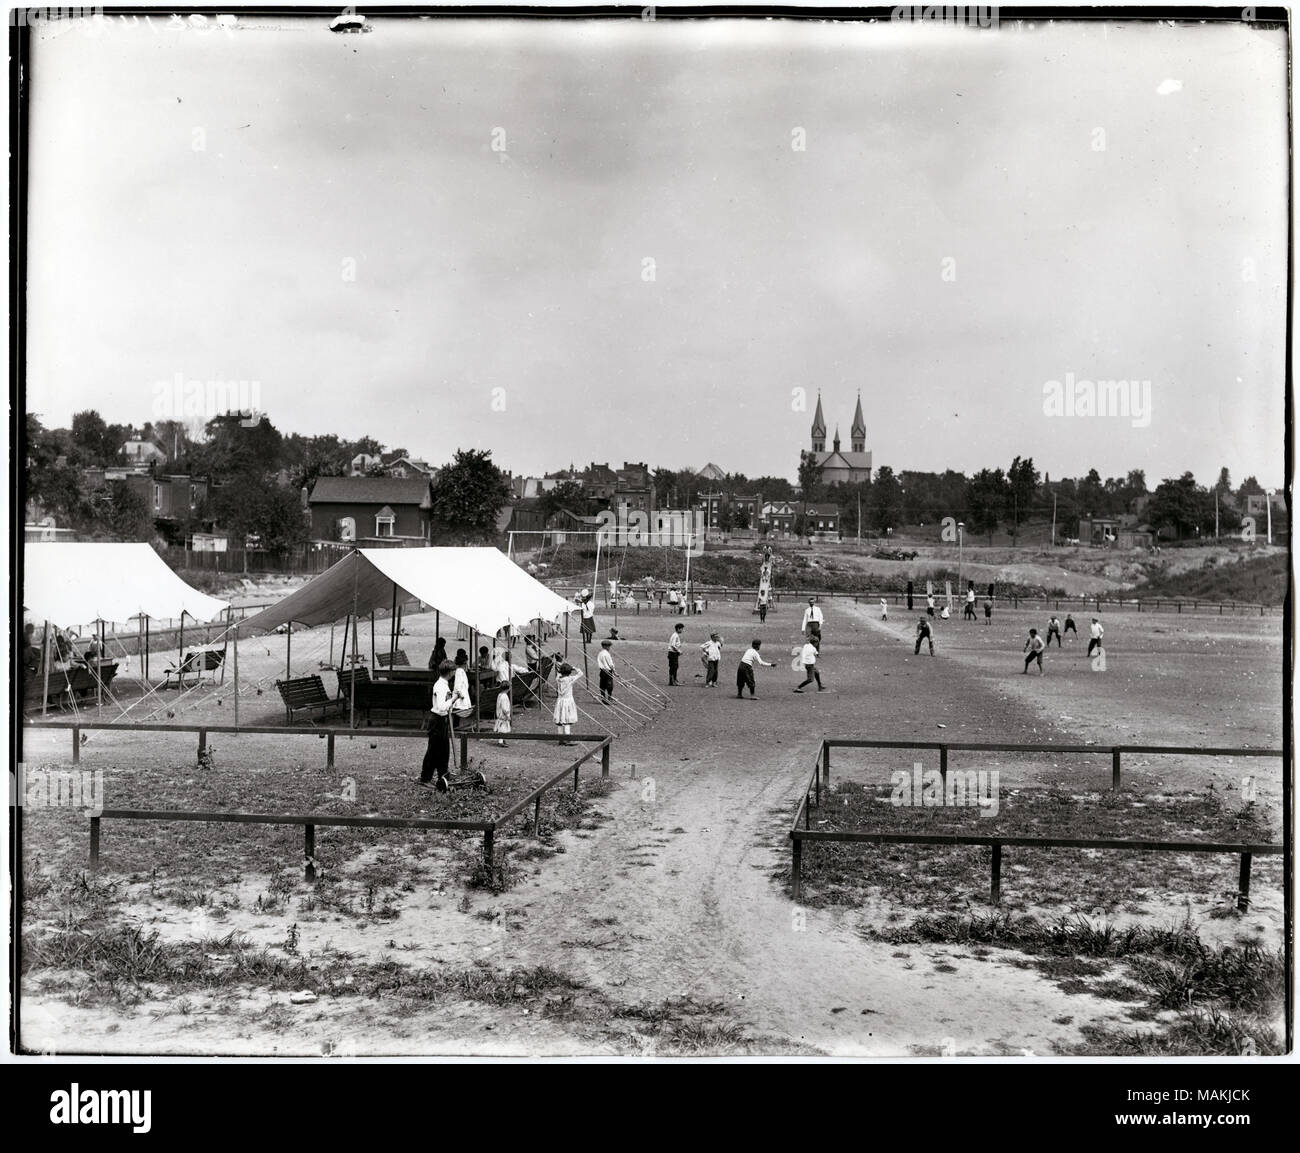 Horizontal Black And White Photograph Showing Children Playing At